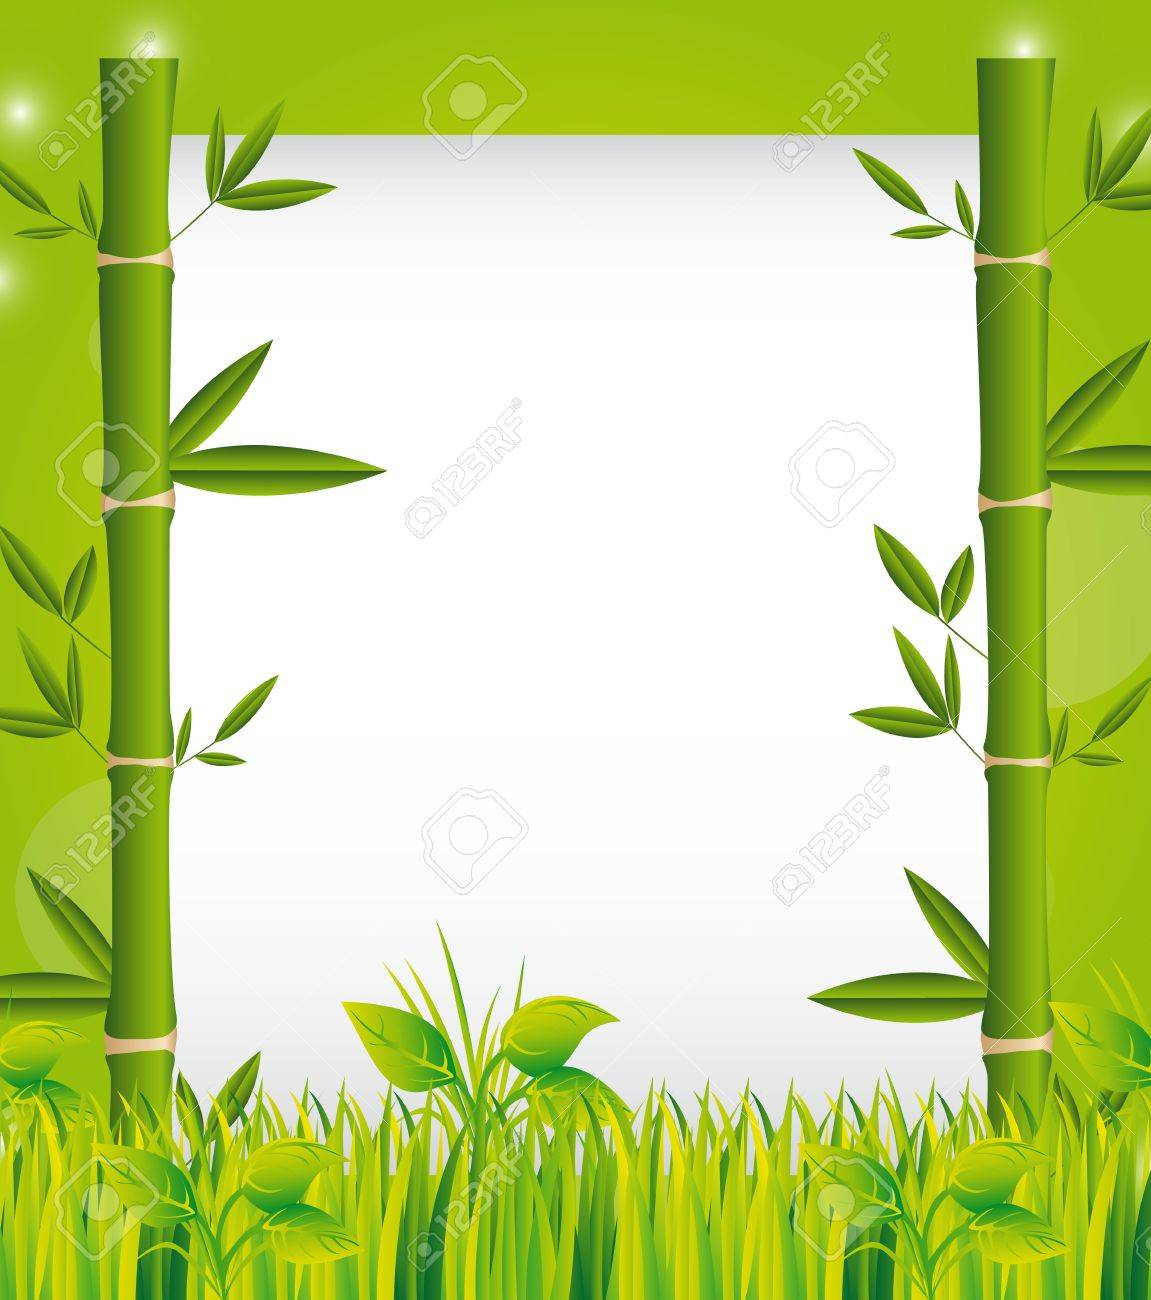 bamboo over grass with space for copy, background. Stock Vector - 13439155